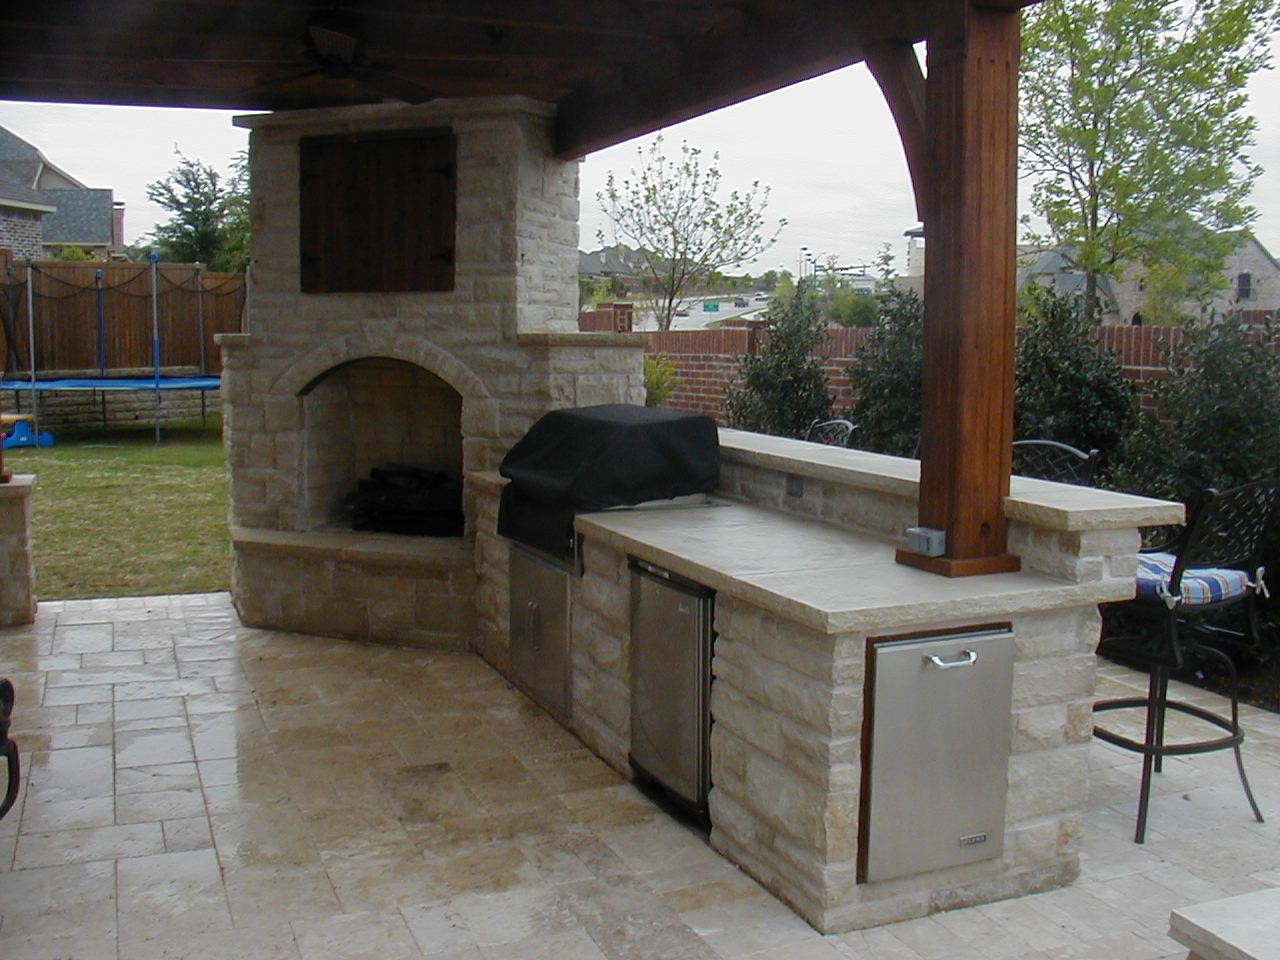 Outdoor Fireplace With Covered Tv Connects To Outdoor Kitchen Love